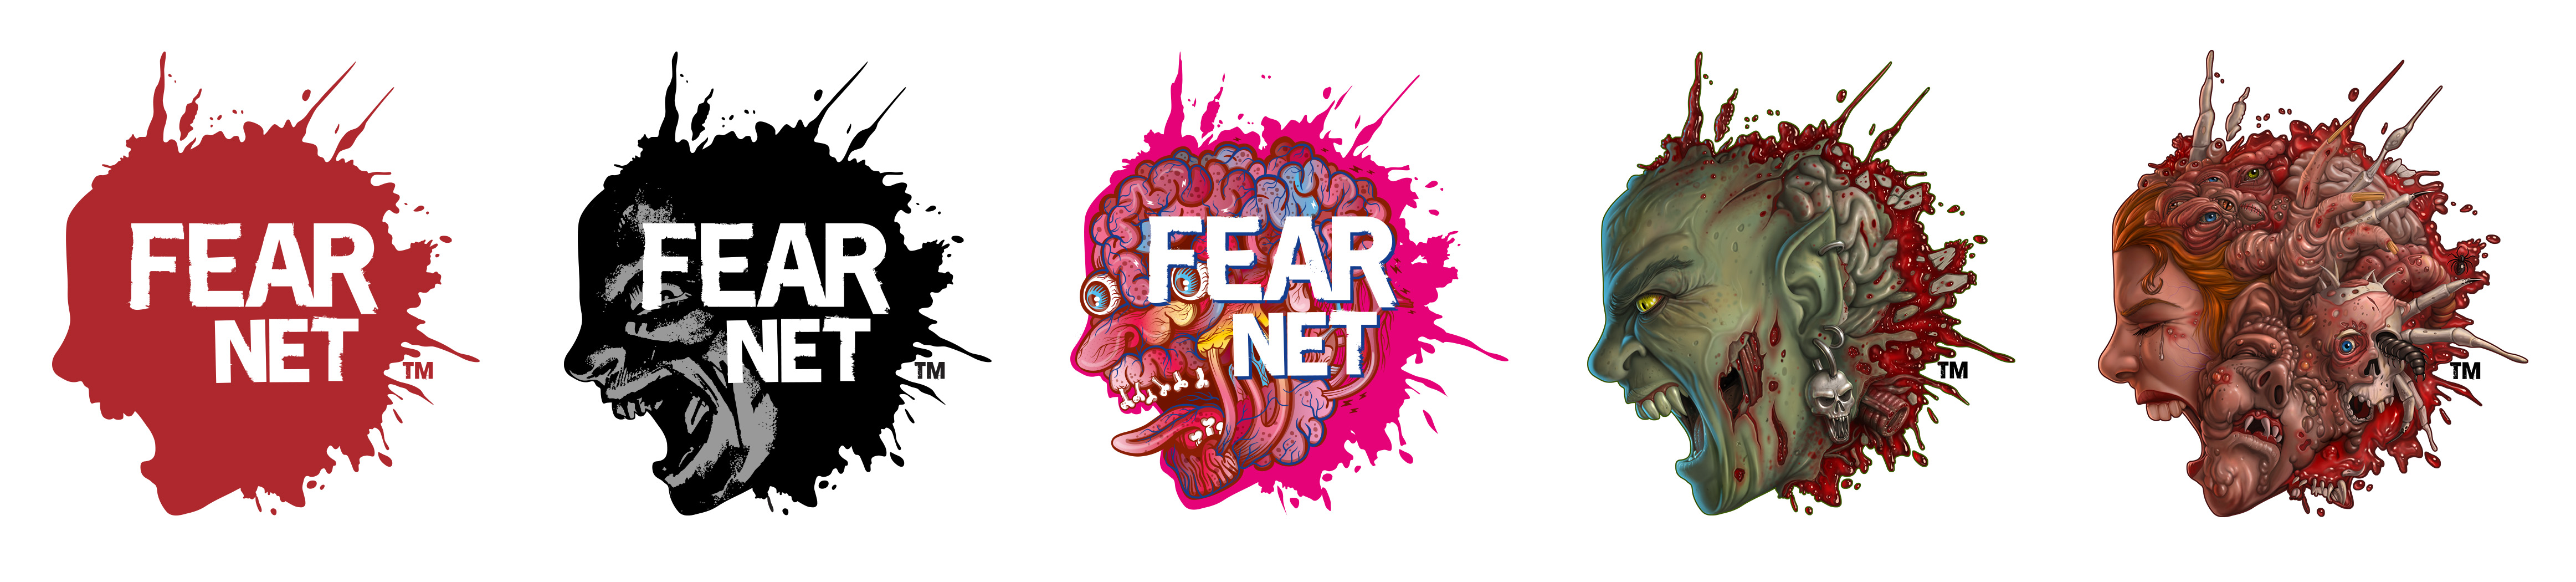 Fearnet holiday sweepstakes contest